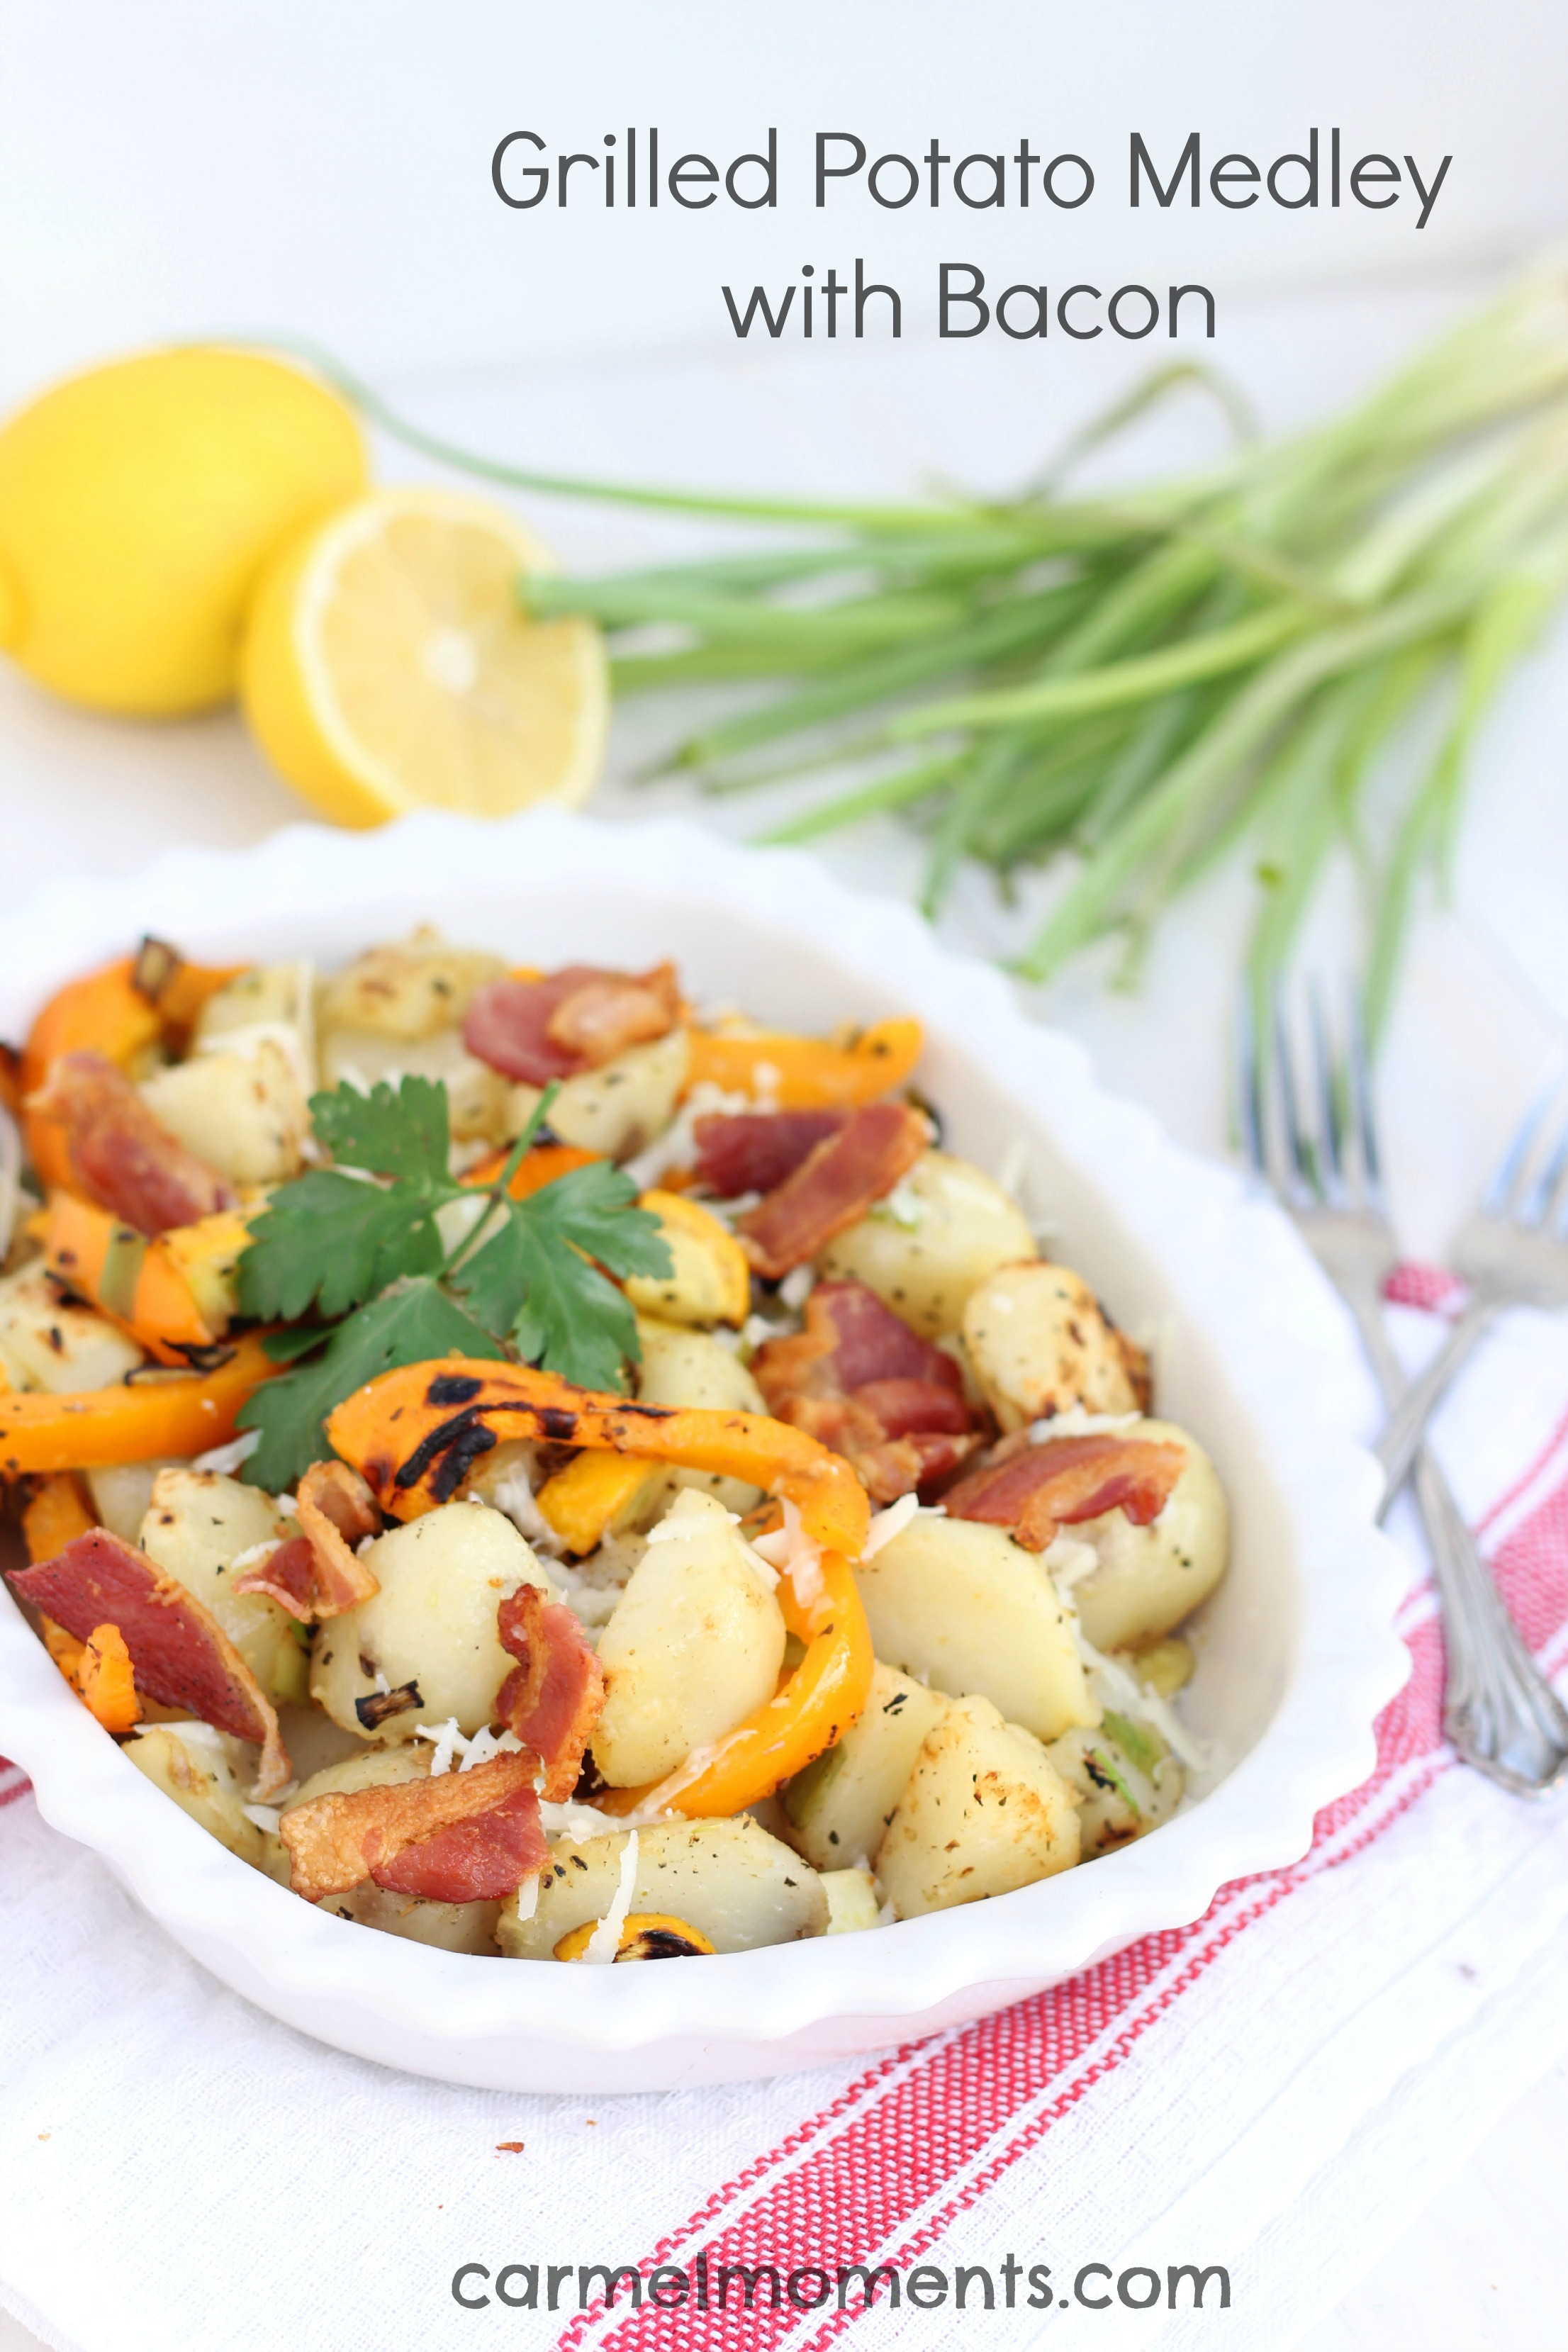 Grilled Potato Medley with Bacon